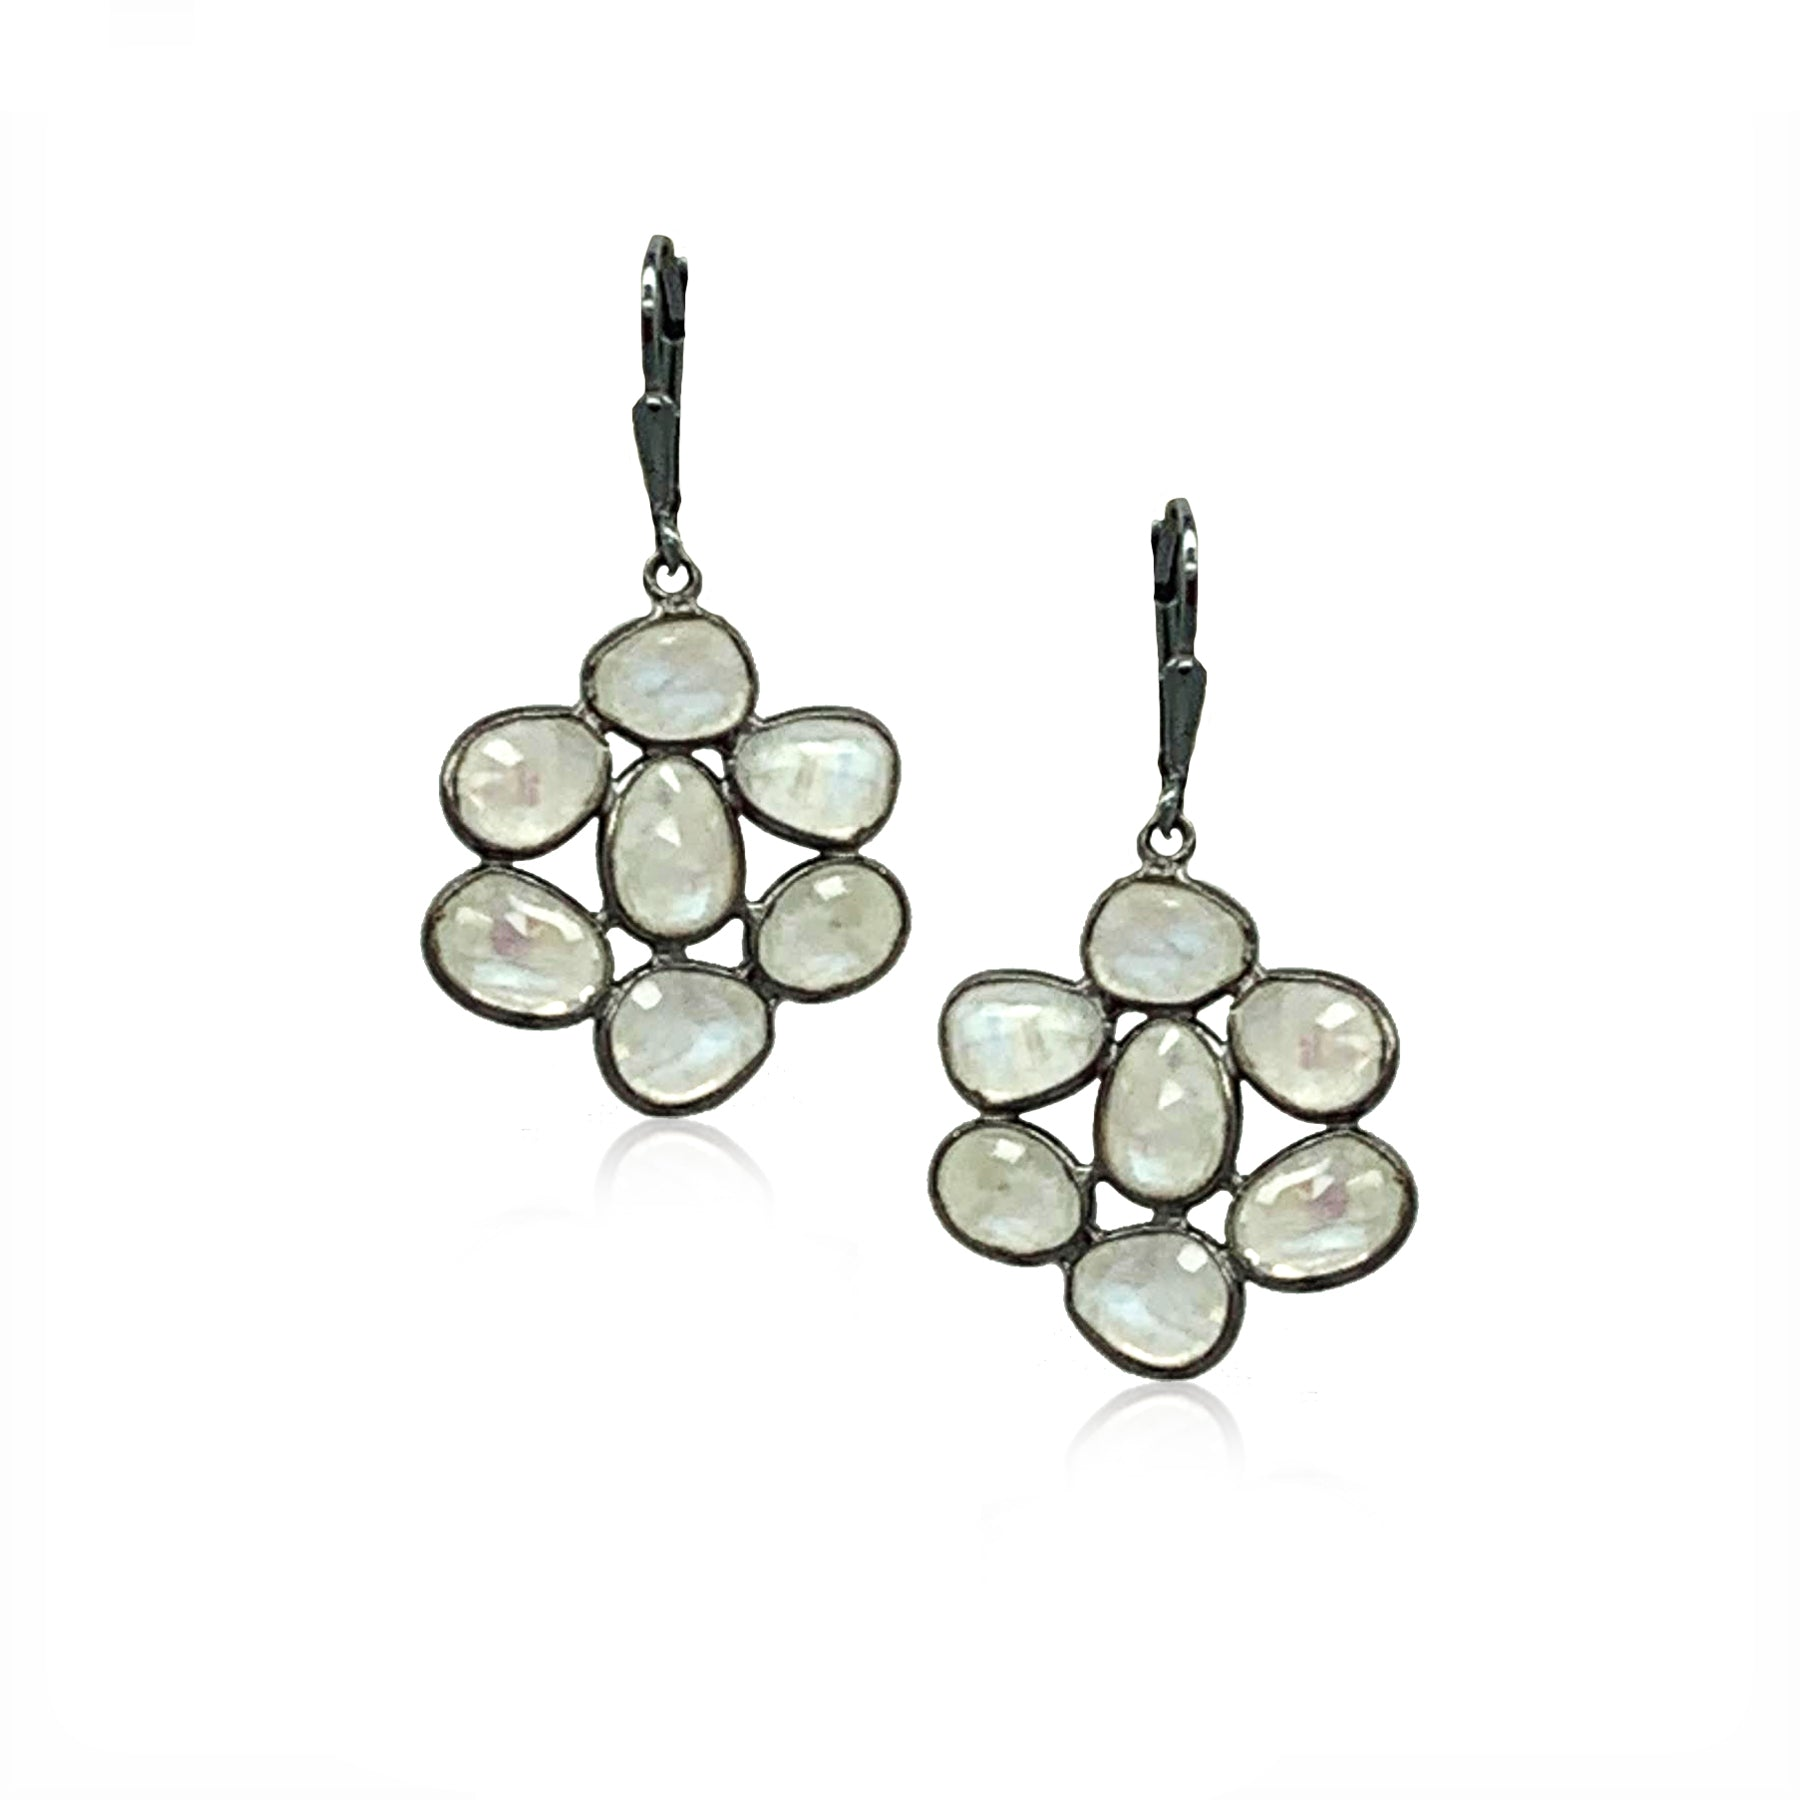 Moonstone Flower Earrings- Gunmetal